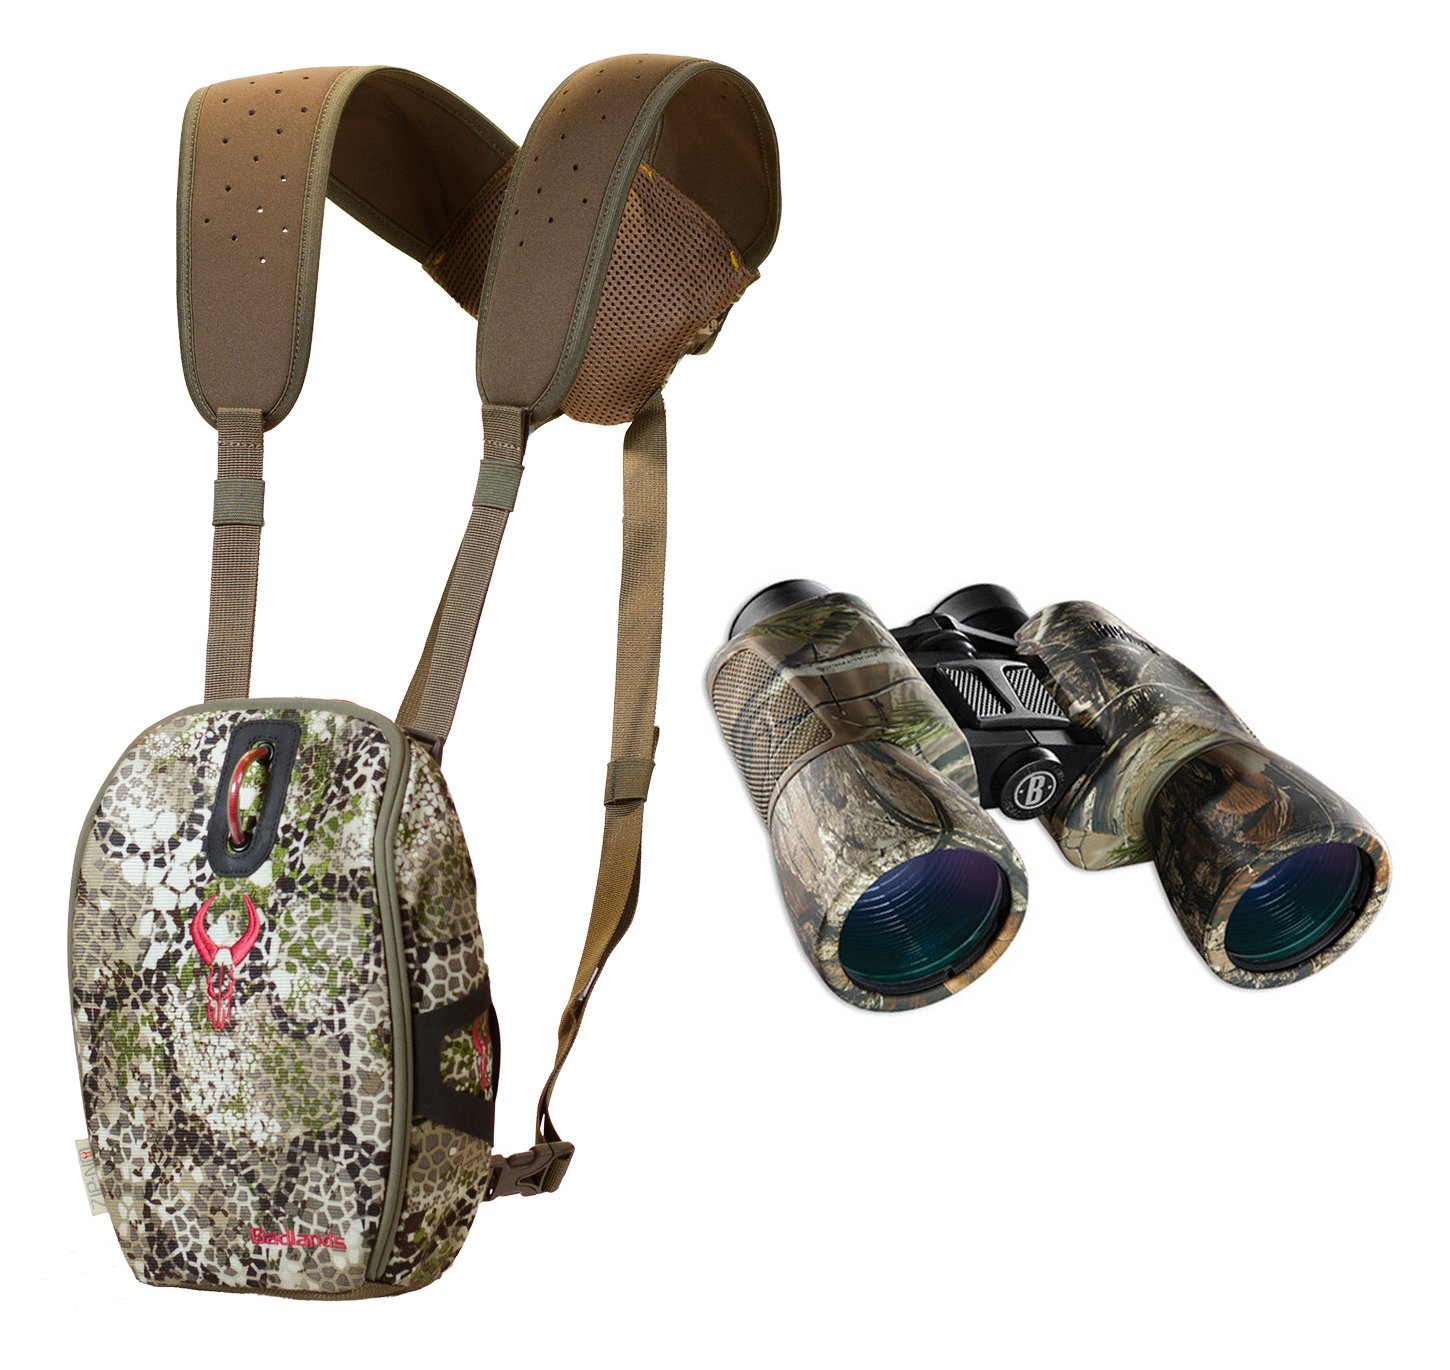 Badlands Mag Bino Case (Approach Camo) and 10x Magnification 10x50 Bushnell Powerview Camo Hunting Binoculars